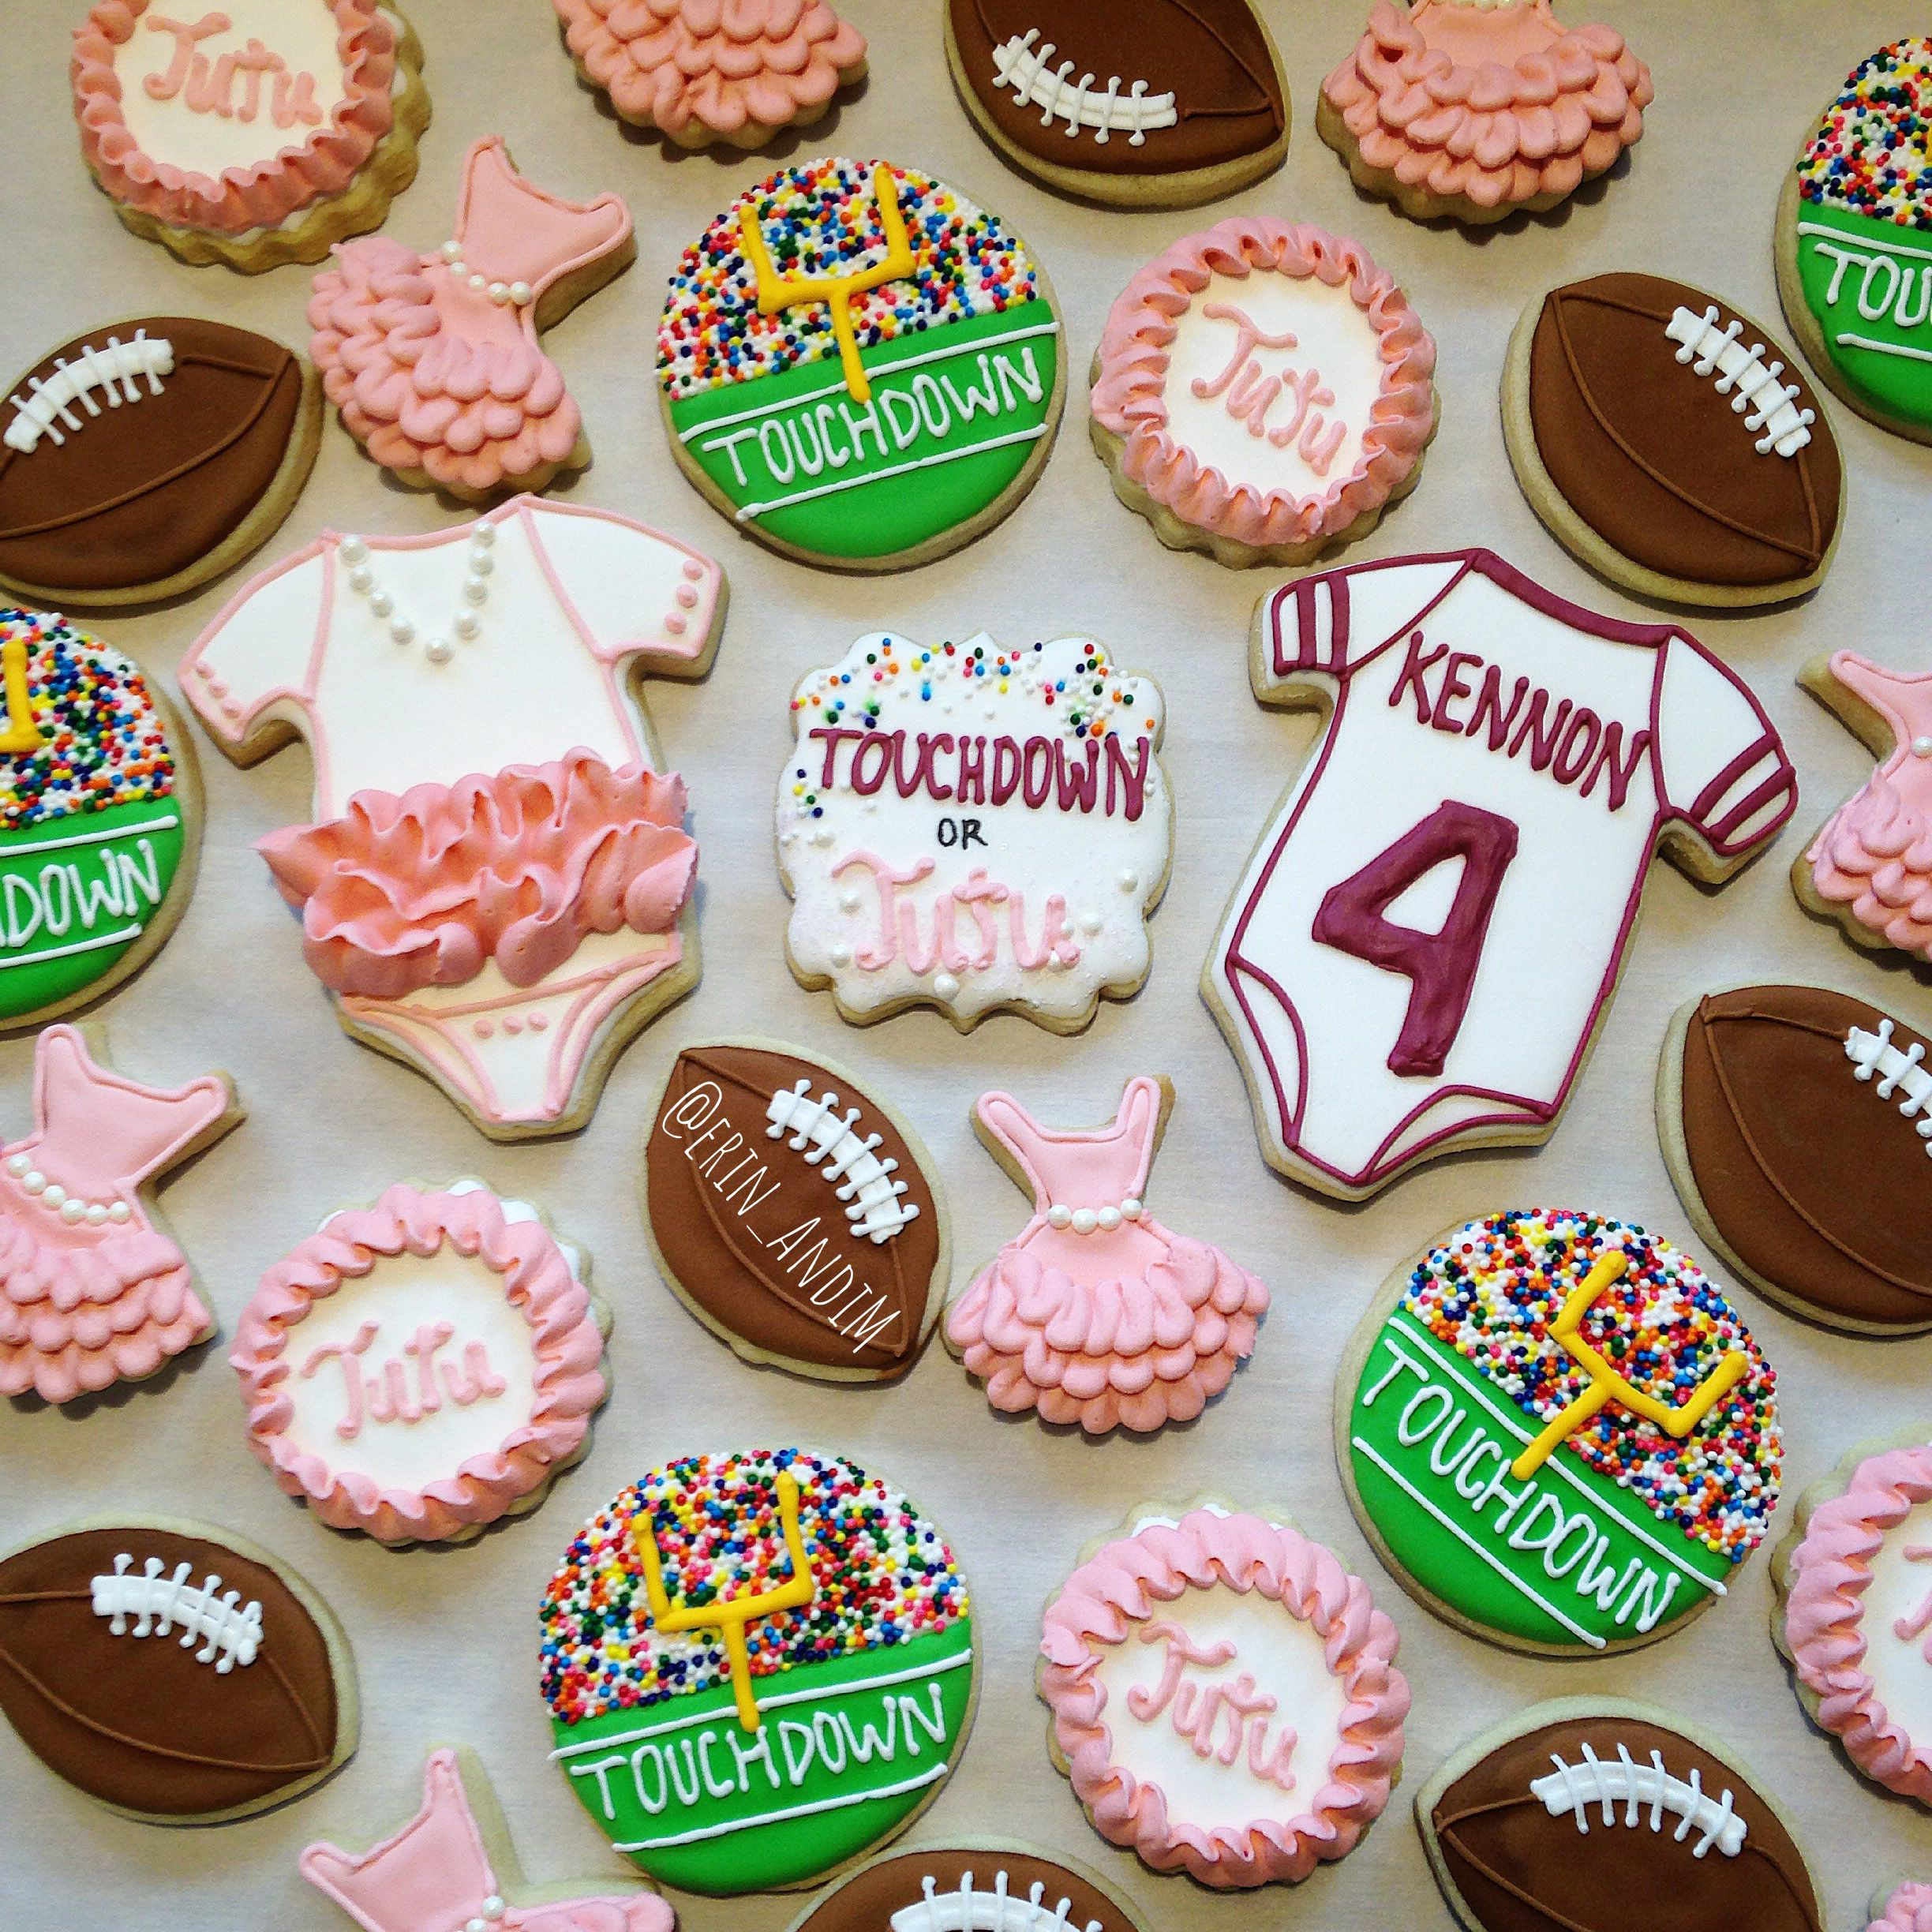 Touchdown Or Tutu Gender Reveal Sugar Cookies Decorated Cookies Royal Icing By Me Erin Gender Reveal Cookies Tutus Gender Reveal Baby Gender Reveal Party